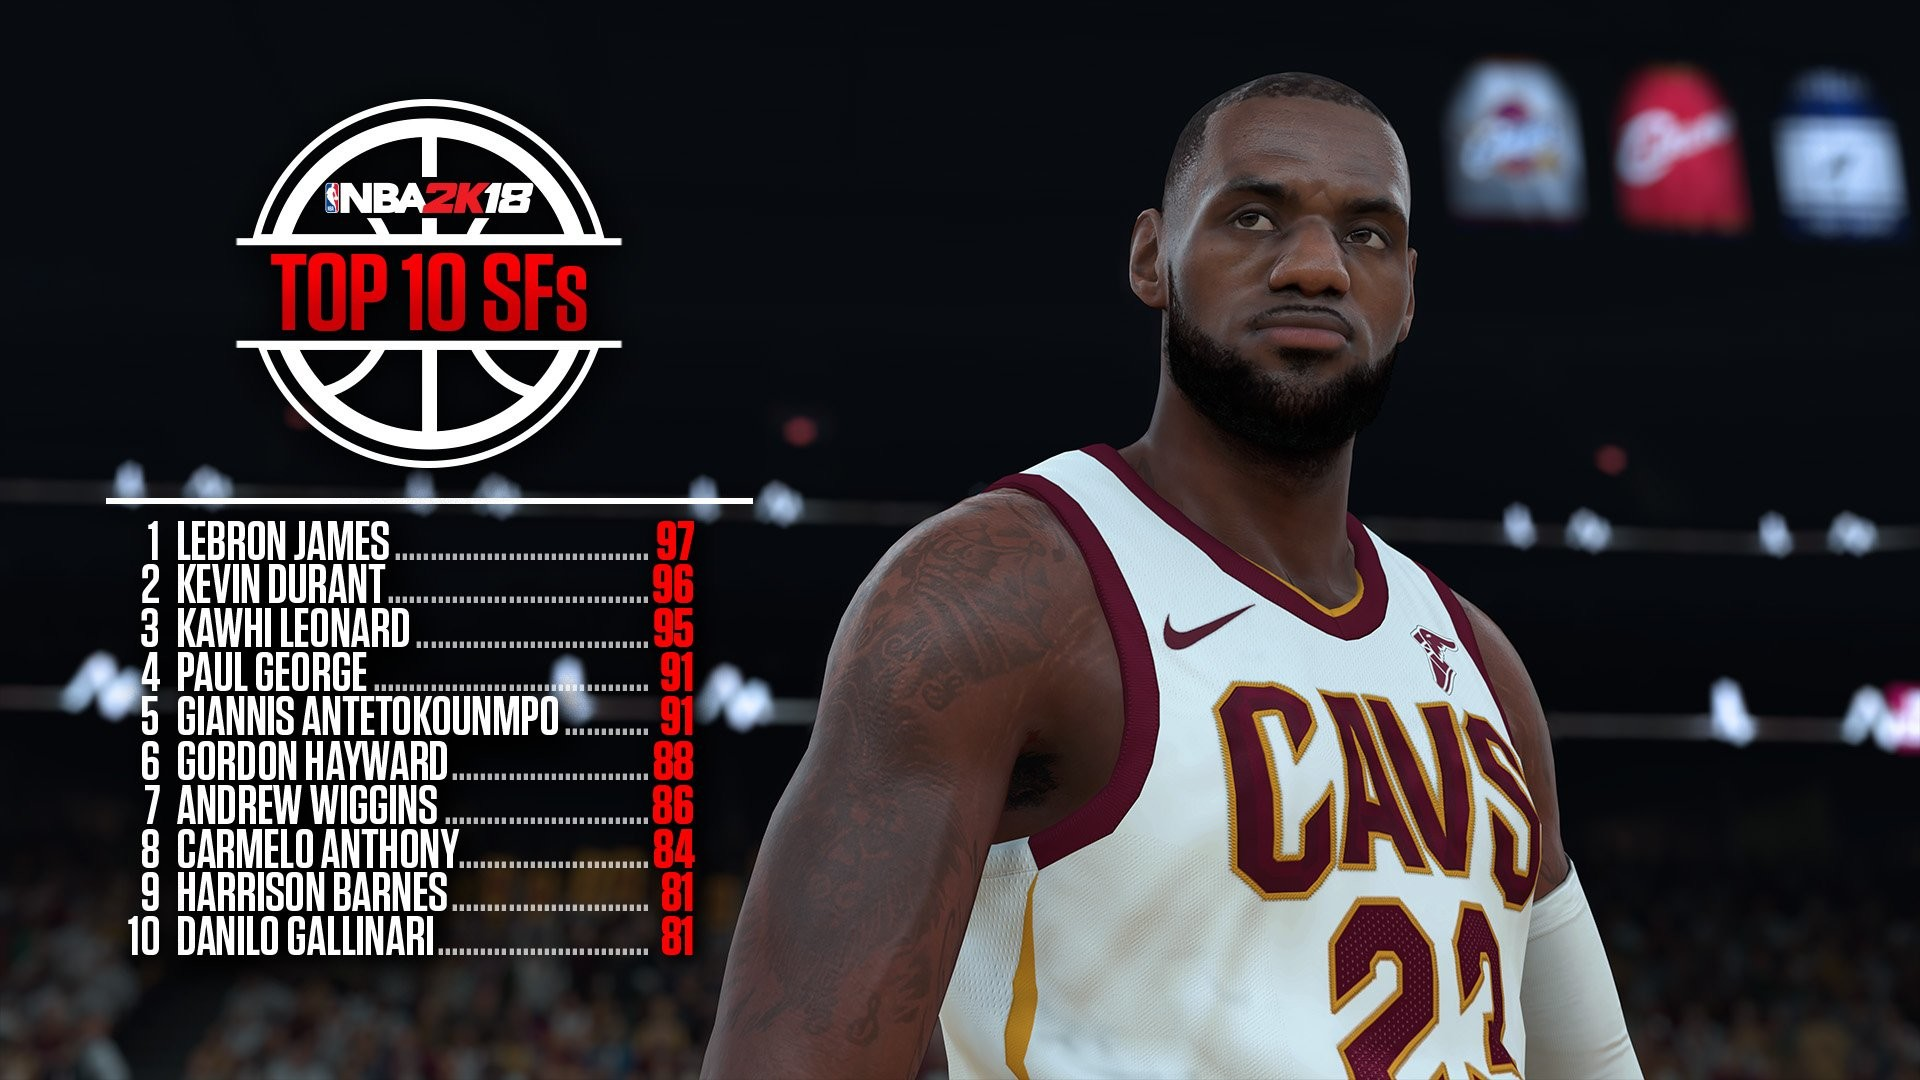 """NBA 2K 2K18 on Twitter: """".@KingJames leads the list of the Top 10 highest  rated SFs in #NBA2K18! https://t.co/8RpSxBZddX"""""""